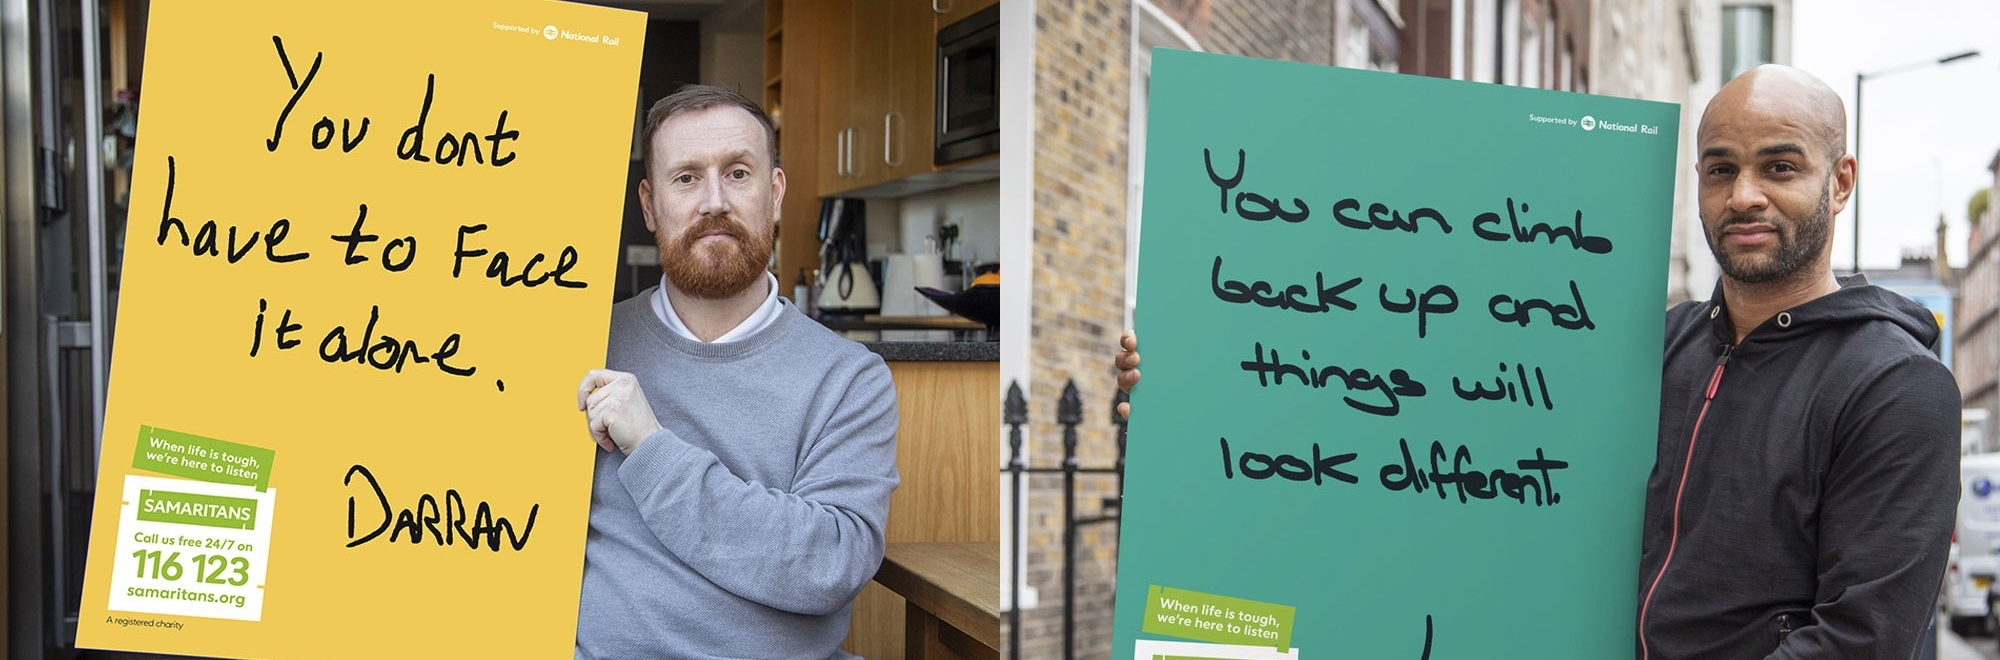 Men open up in a Samaritans campaign that shows 'It's ok not to be ok'